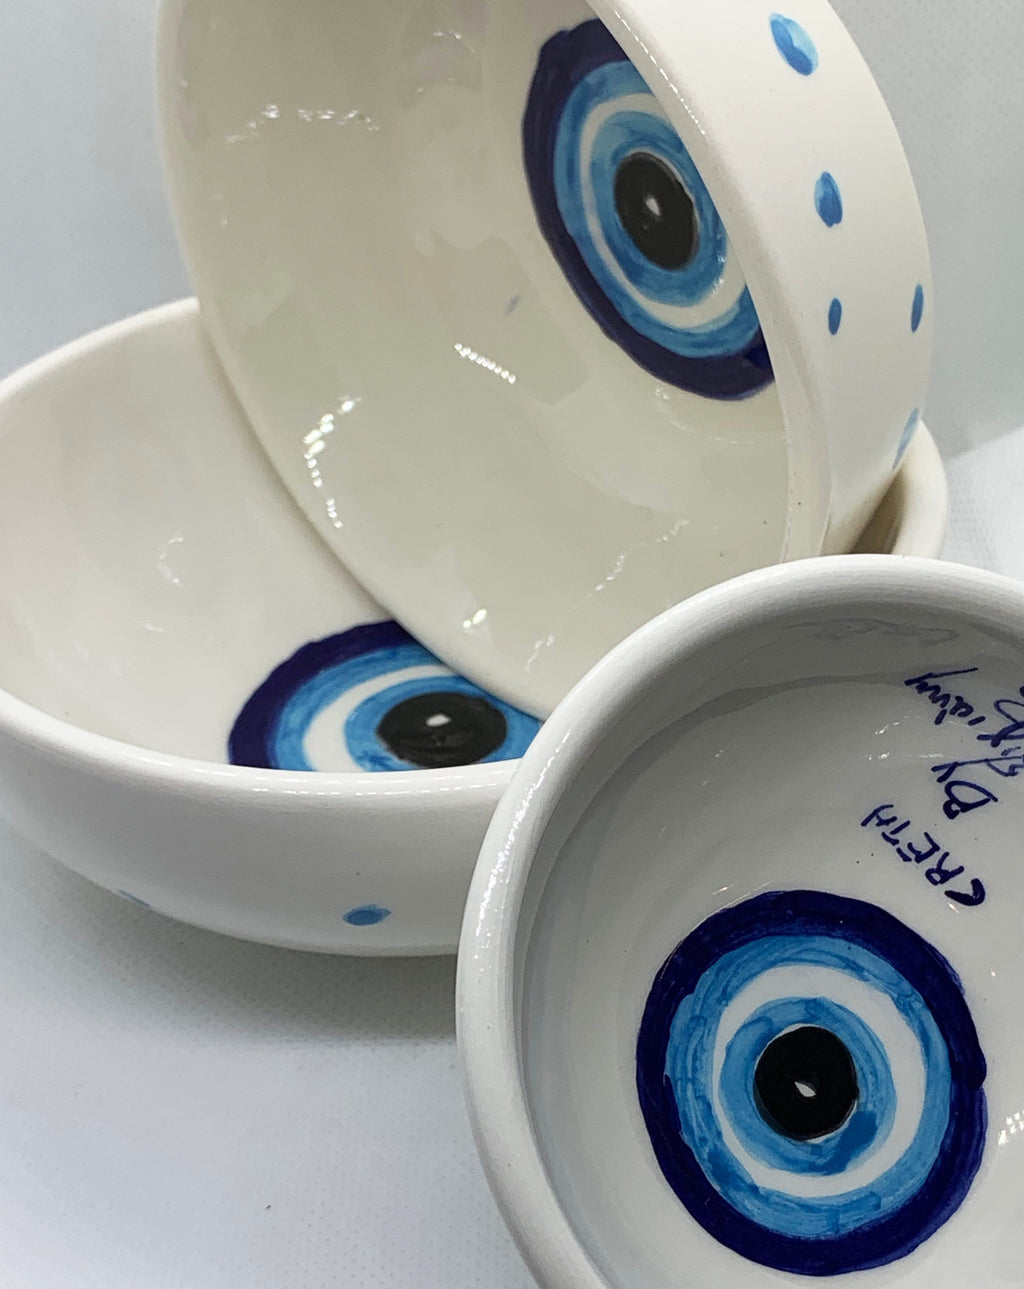 set of ceramic bowls with evil eye painted